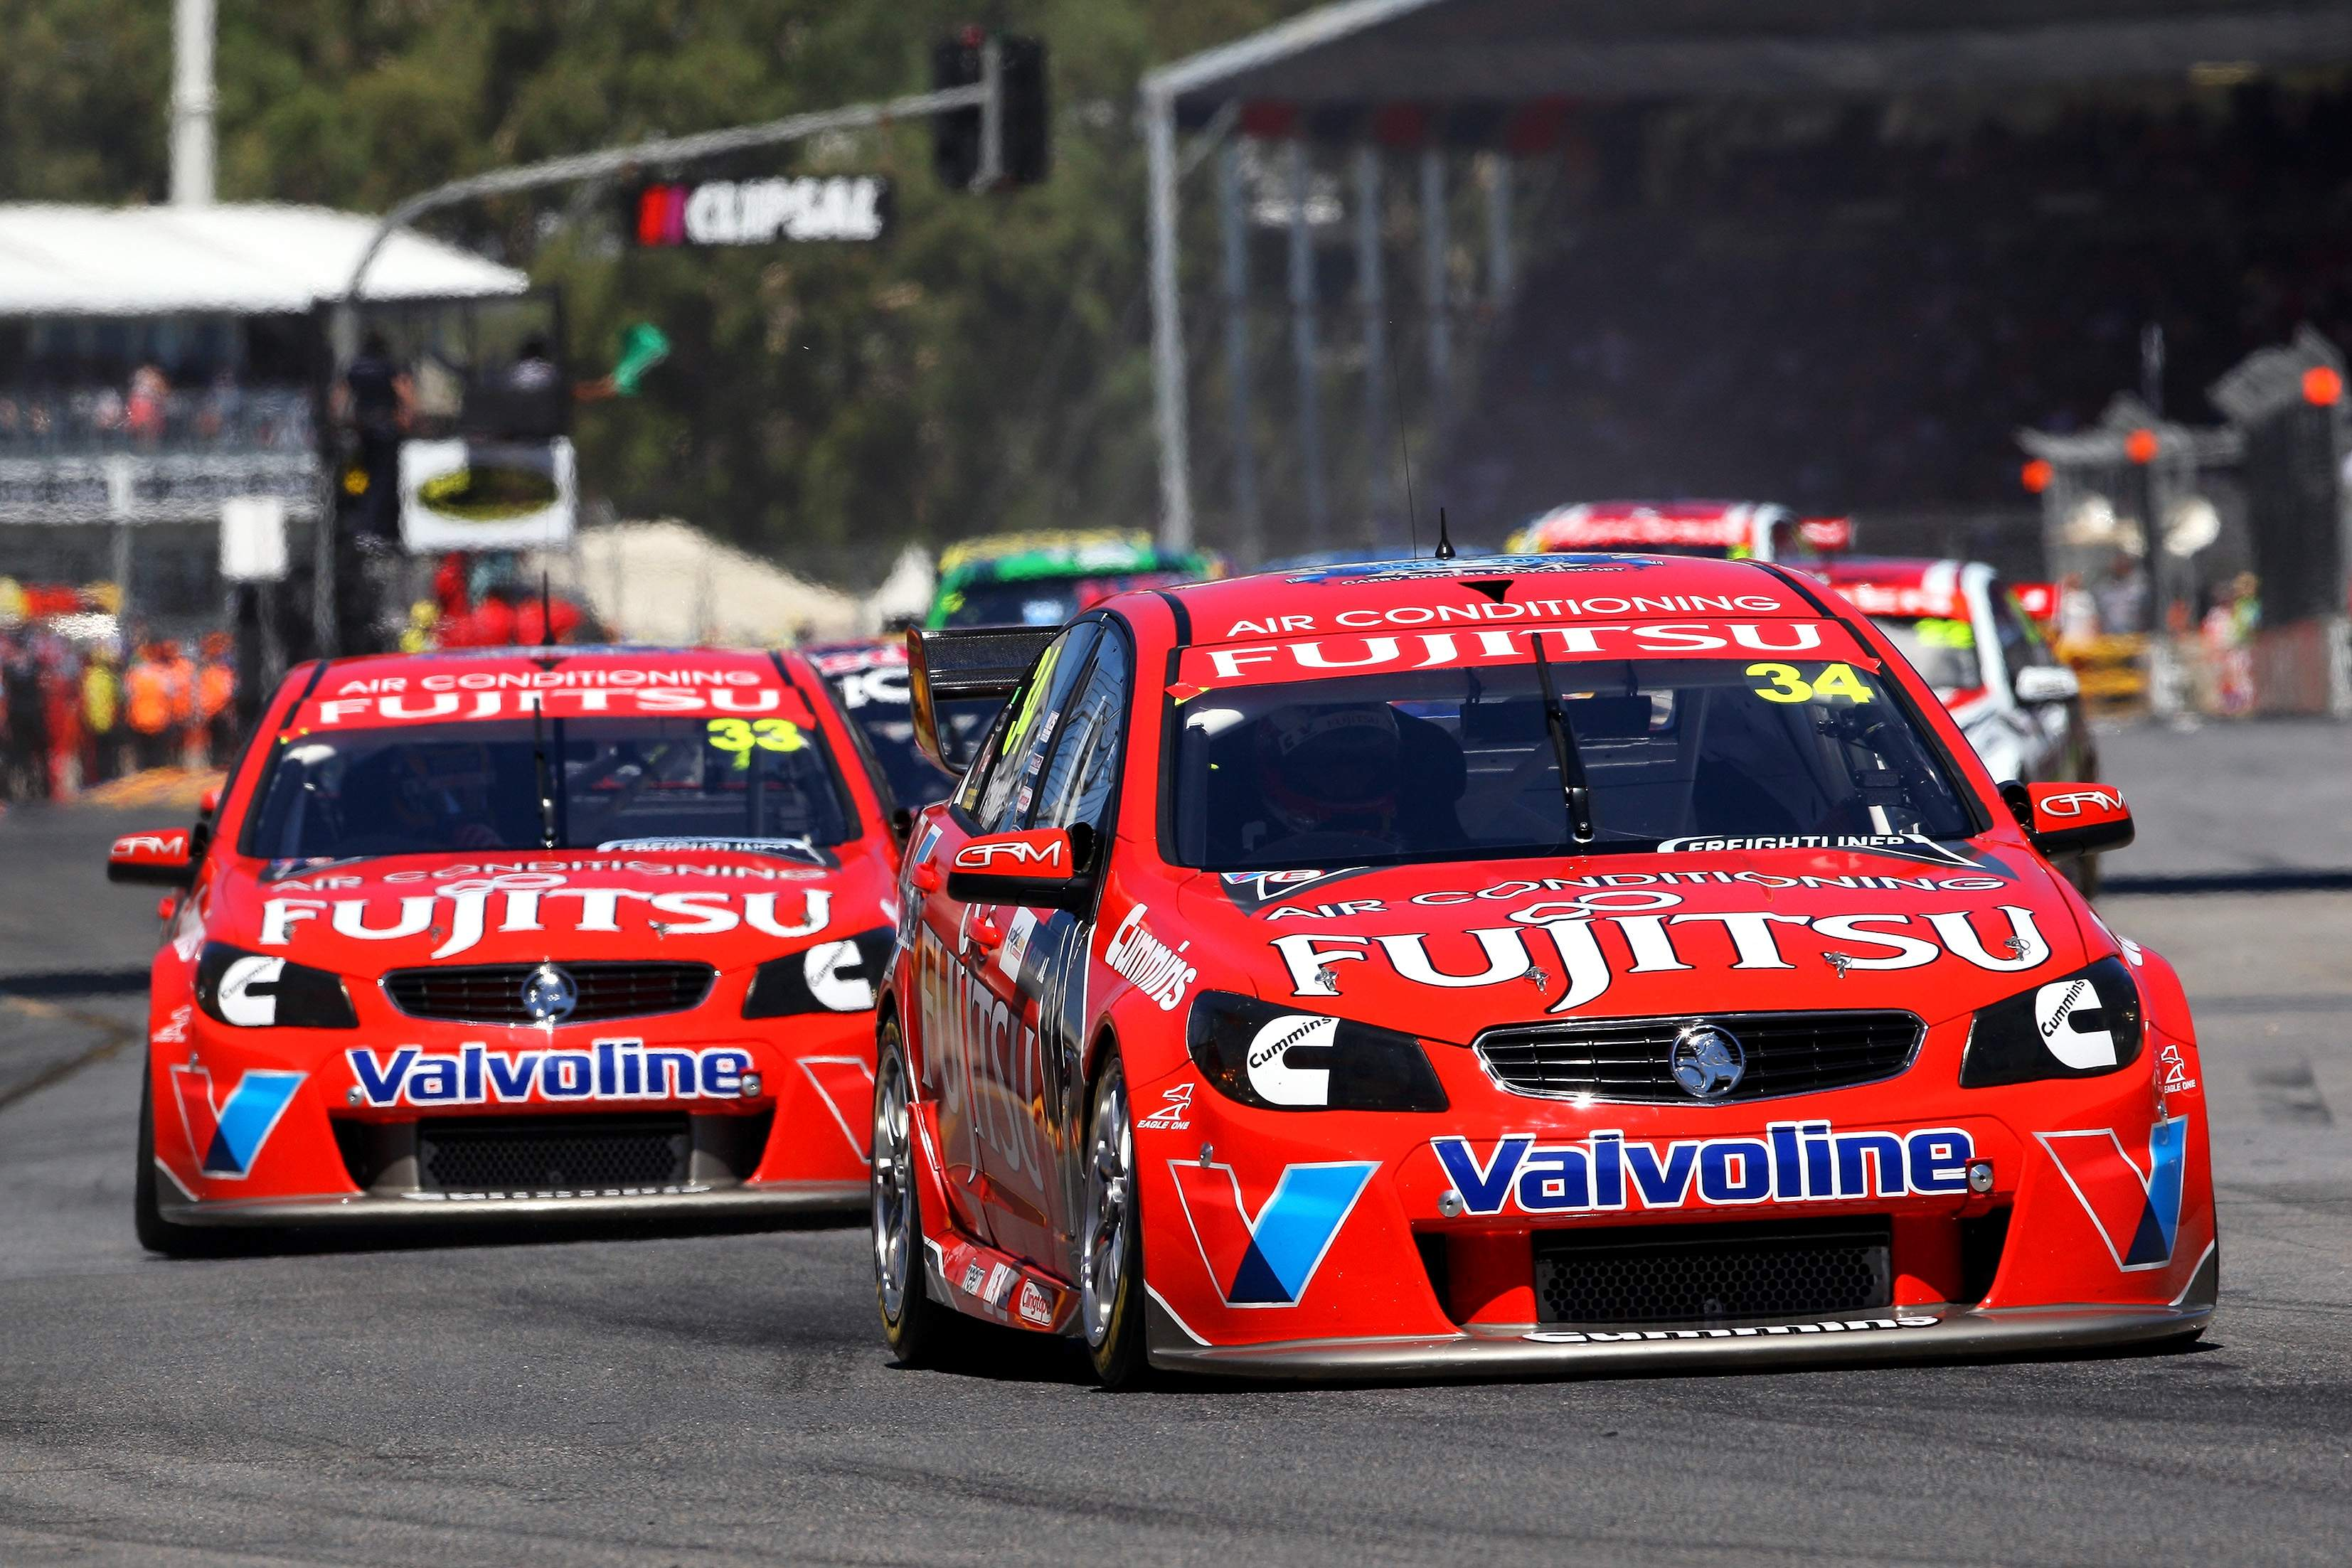 V8 Supercars Wallpapers HD Download 3307x2205